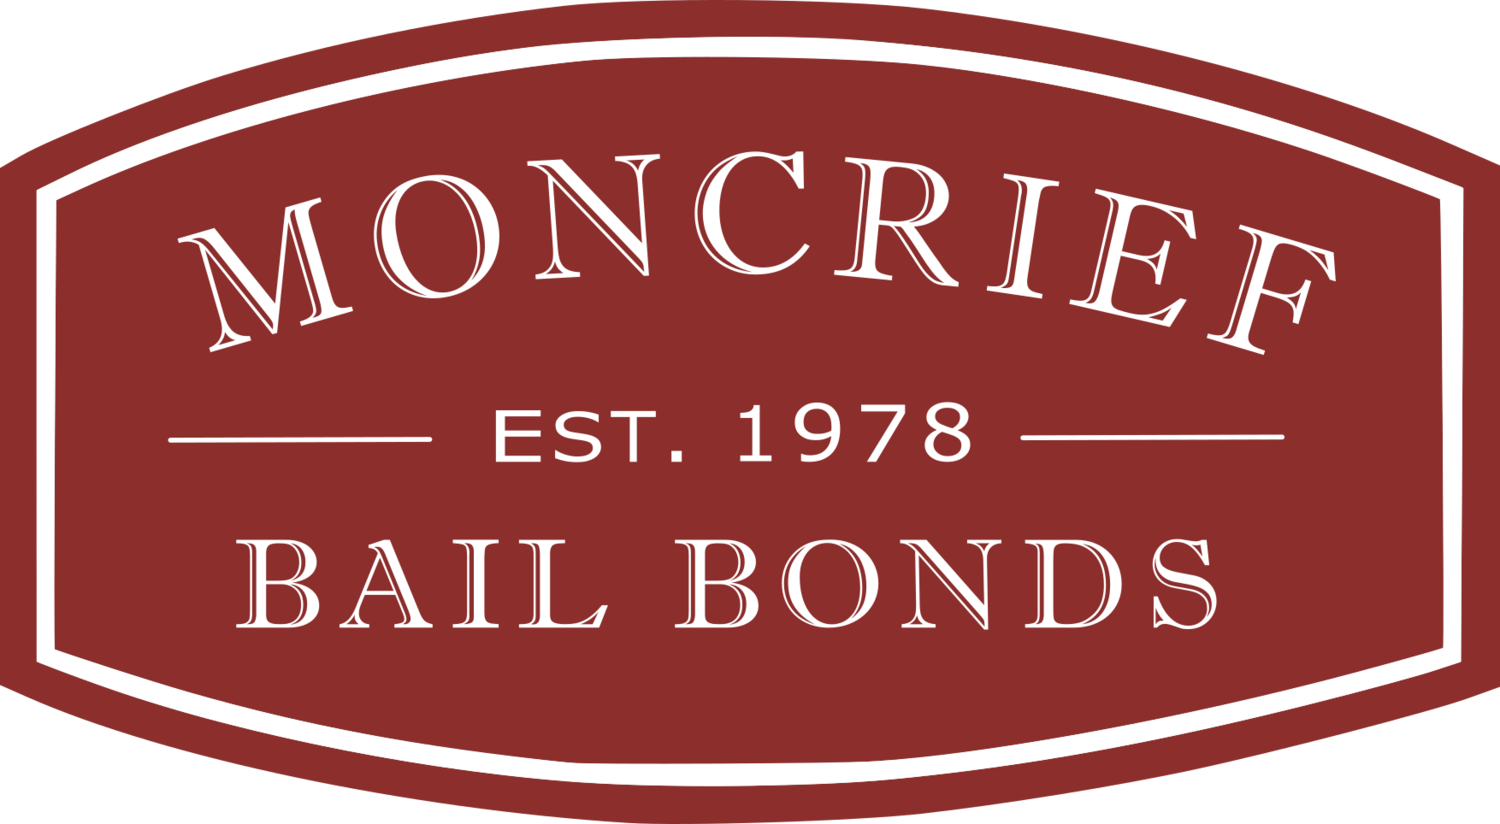 Moncrief Bail Bonds